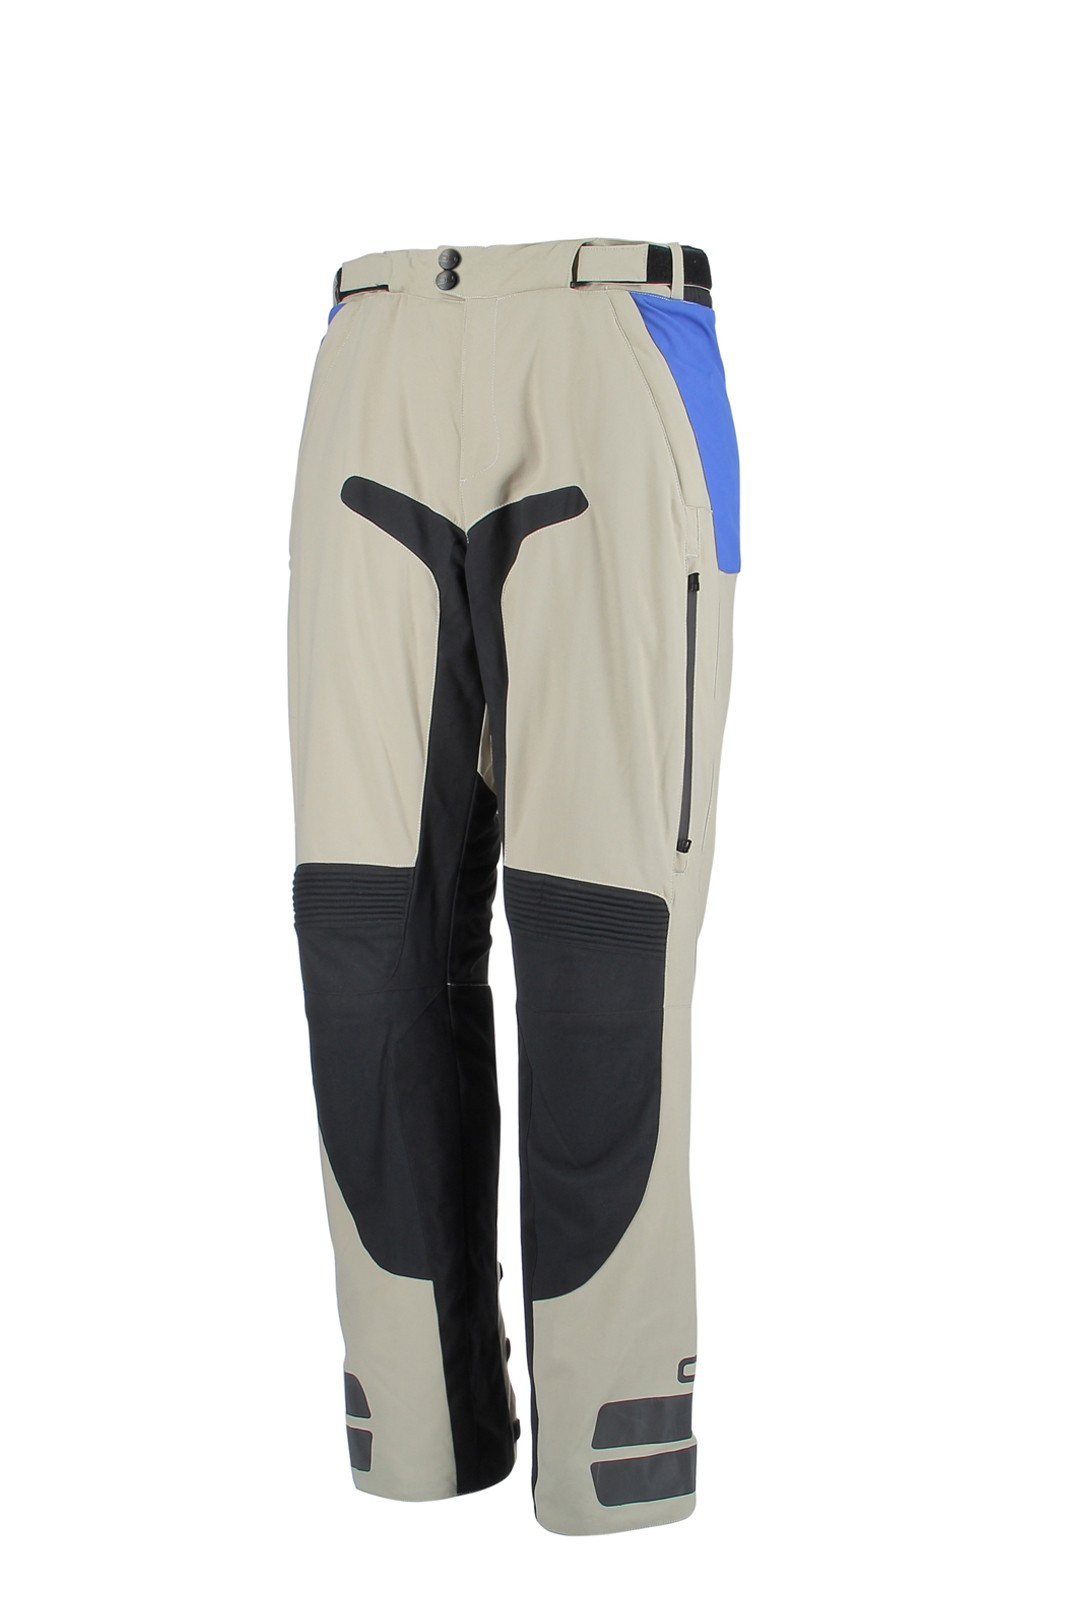 OJ Revolution Man sand blue pants